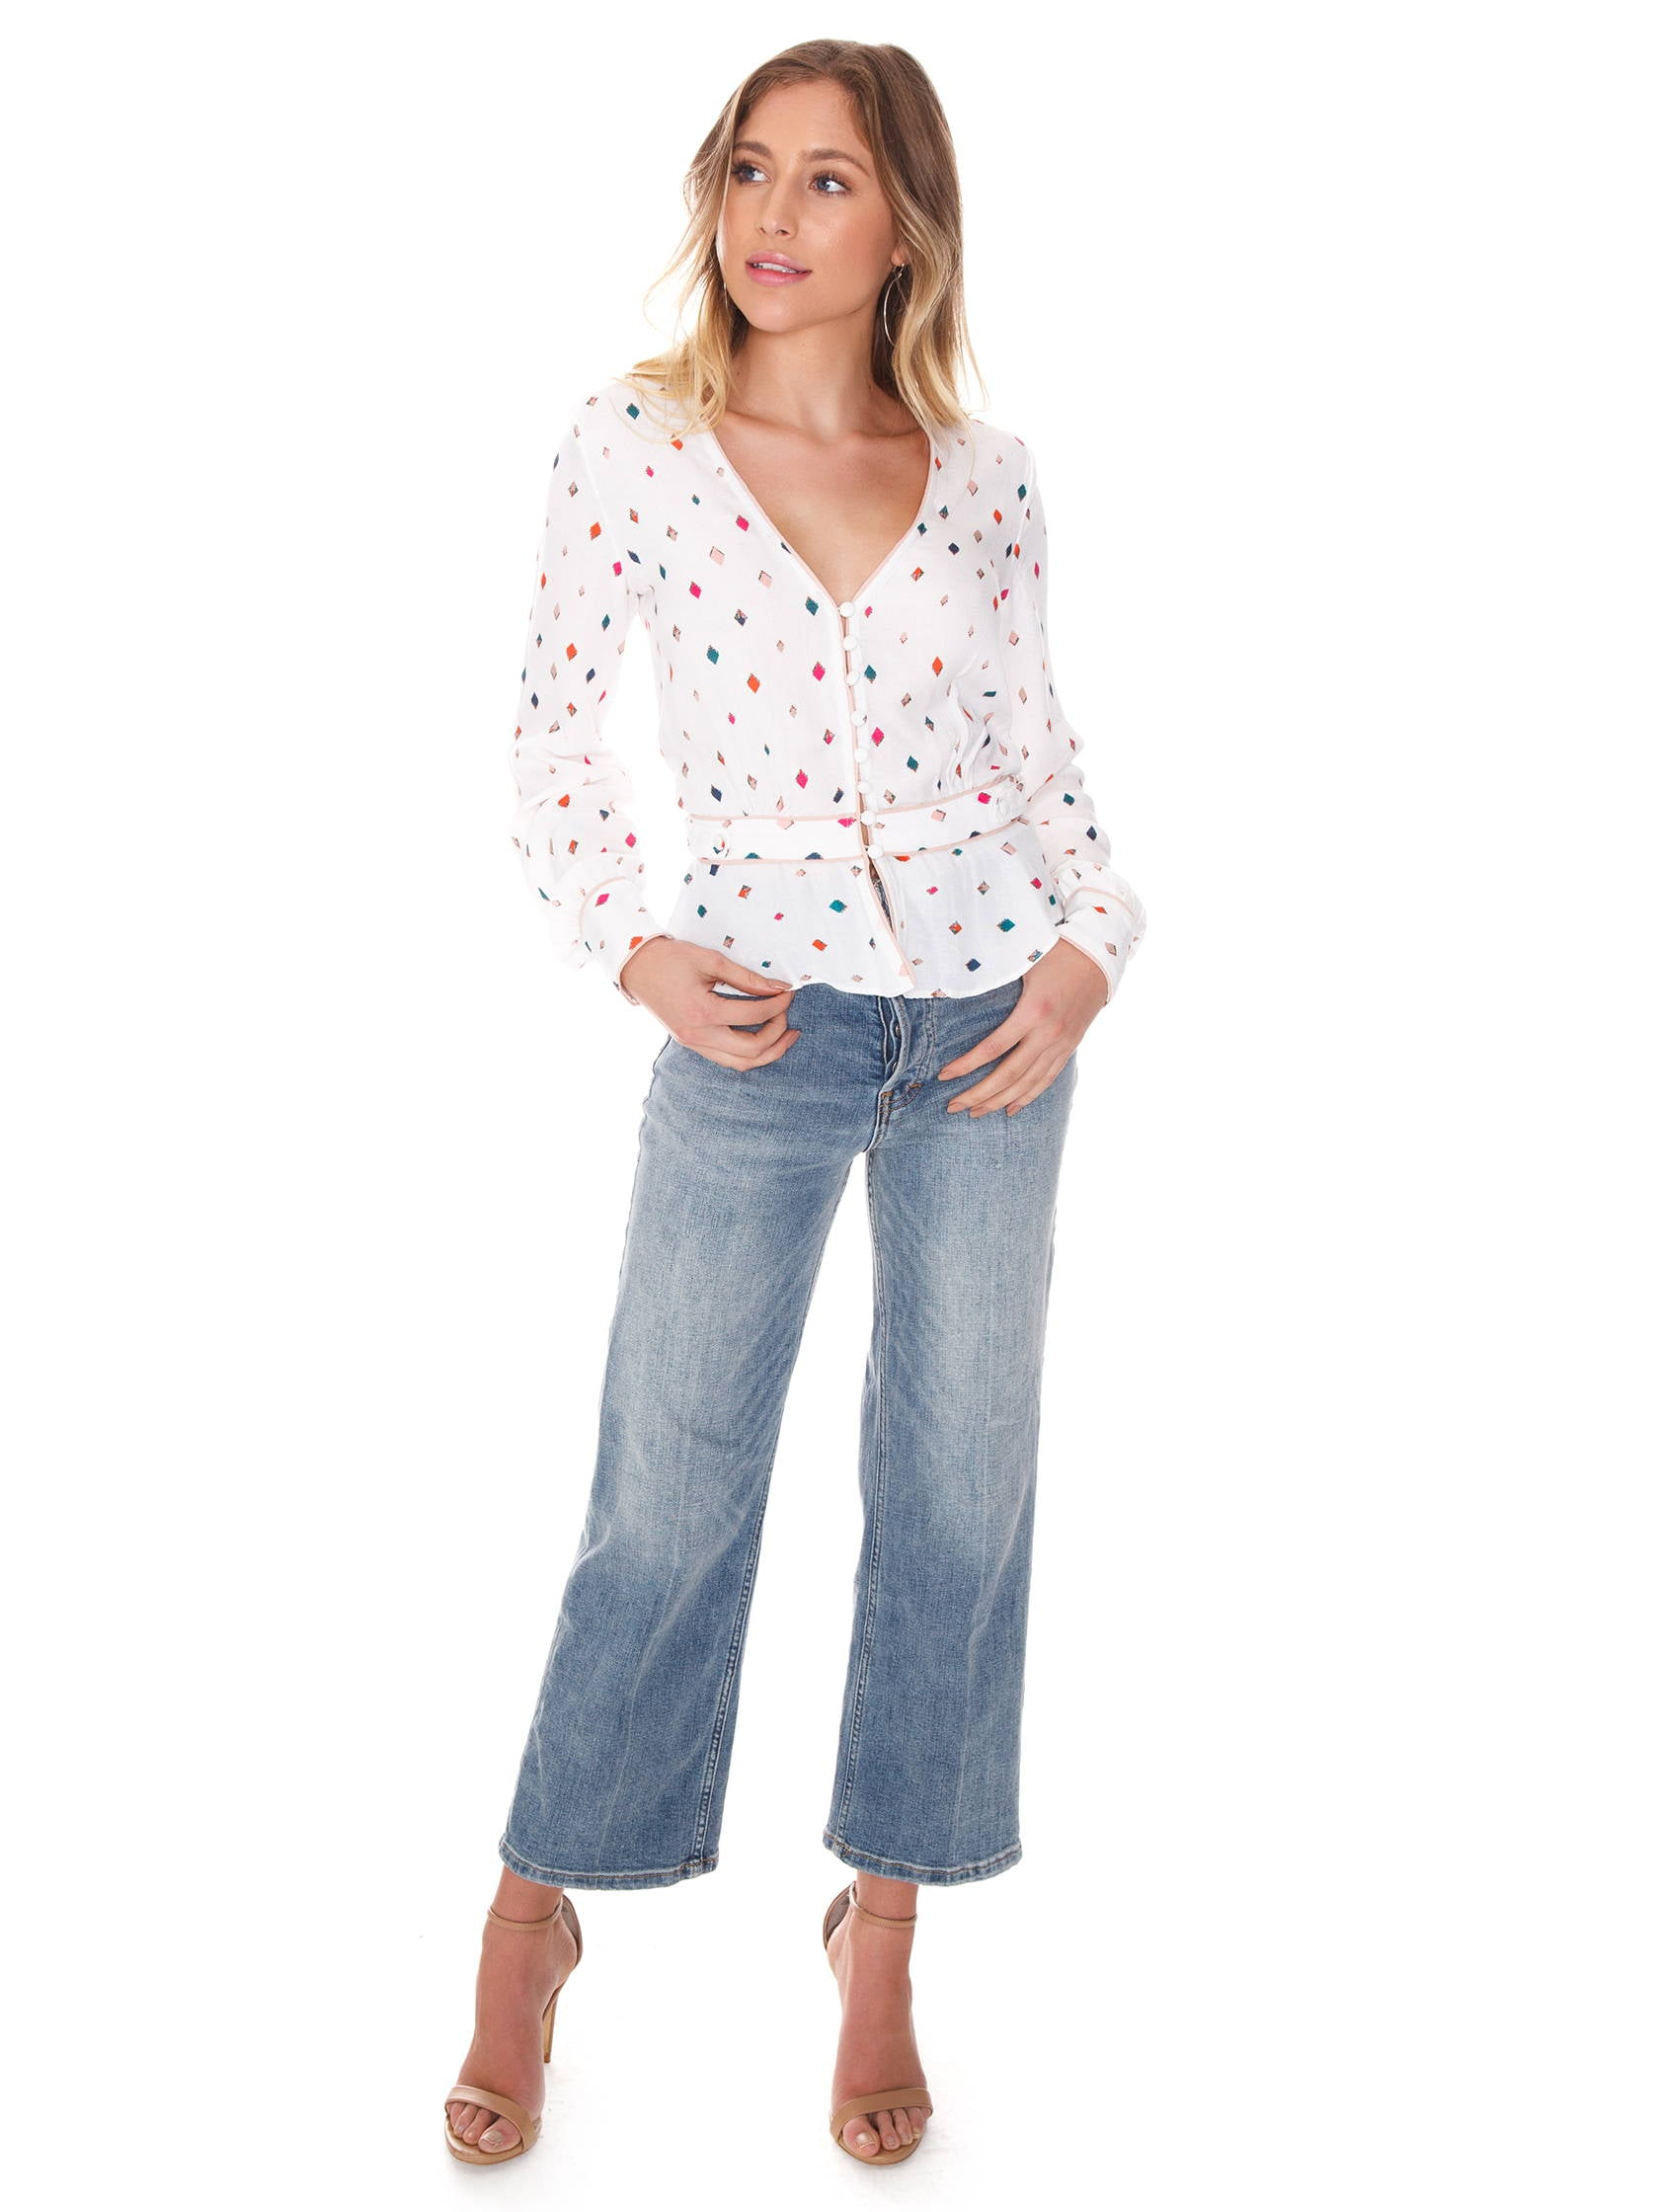 Girl wearing a top rental from FLETCH called Gemma Printed Blouse 2d6a1478b